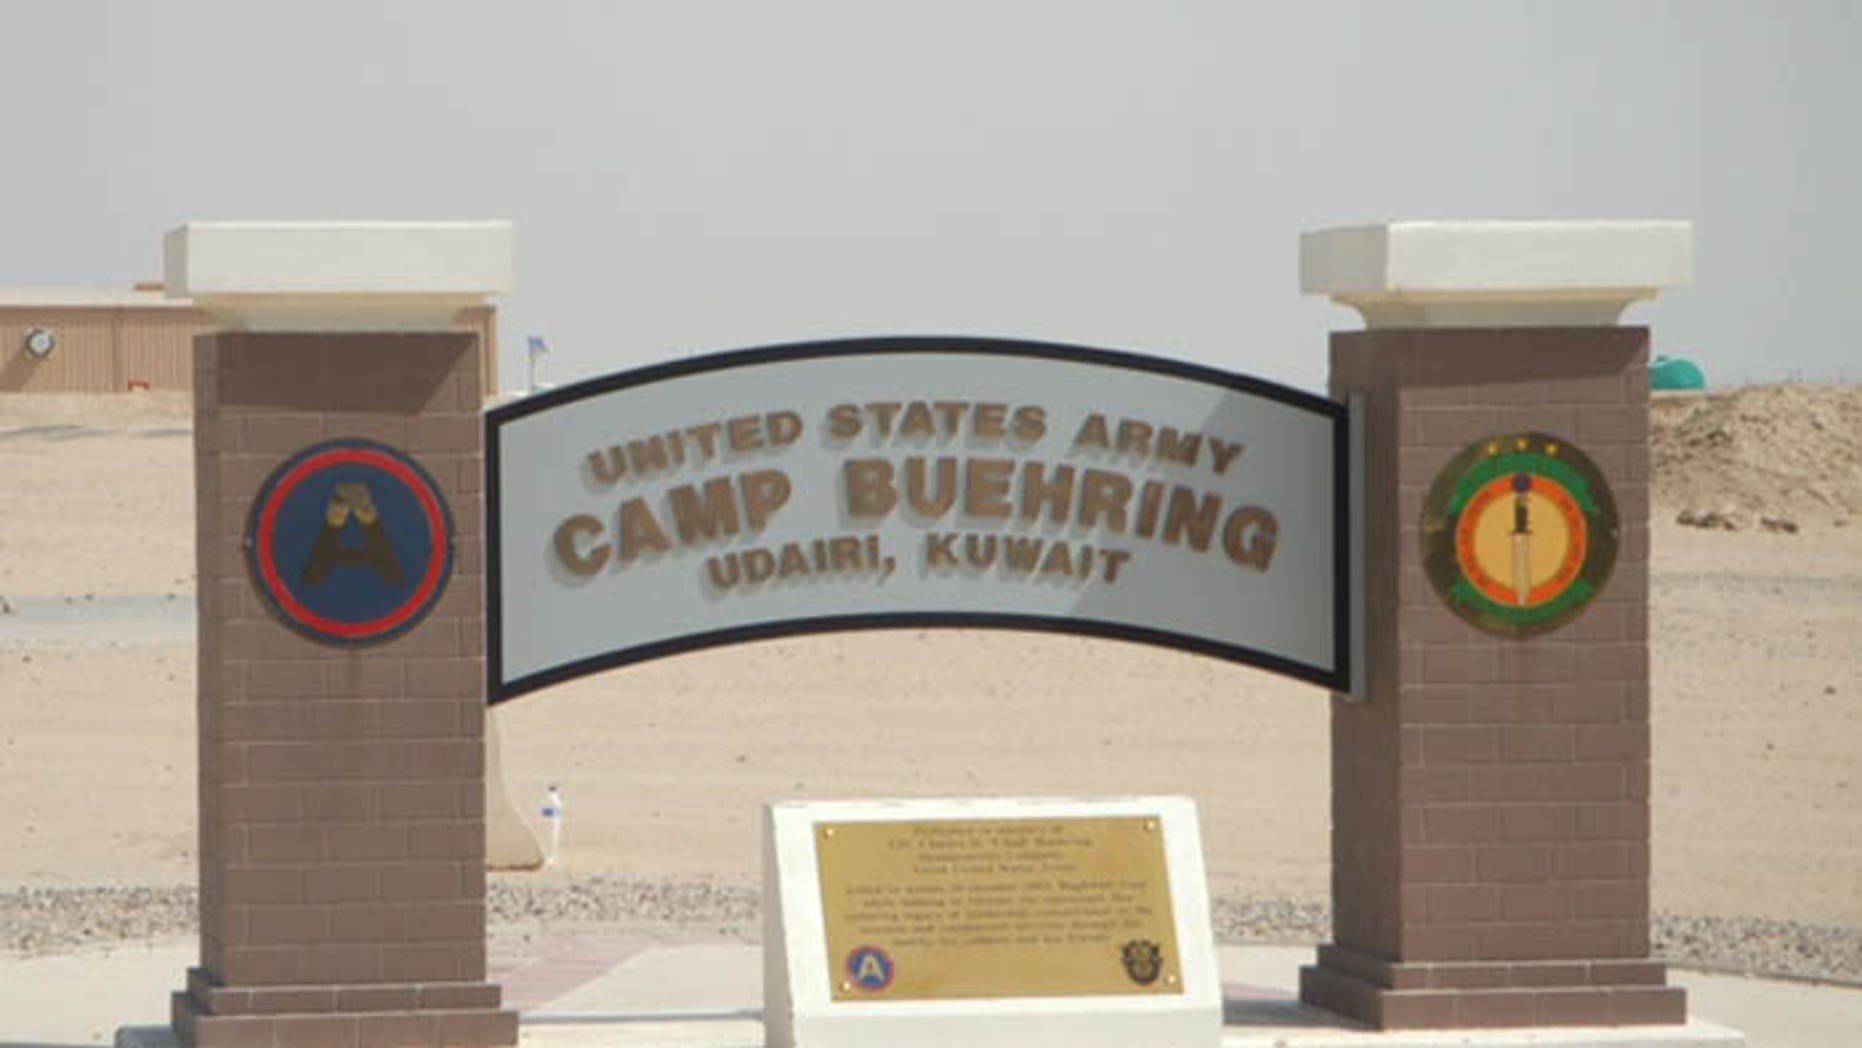 More than 100 American citizens have been trapped on two U.S. Army bases in Kuwait for months because of a contract dispute. (Wikipedia/public domain)